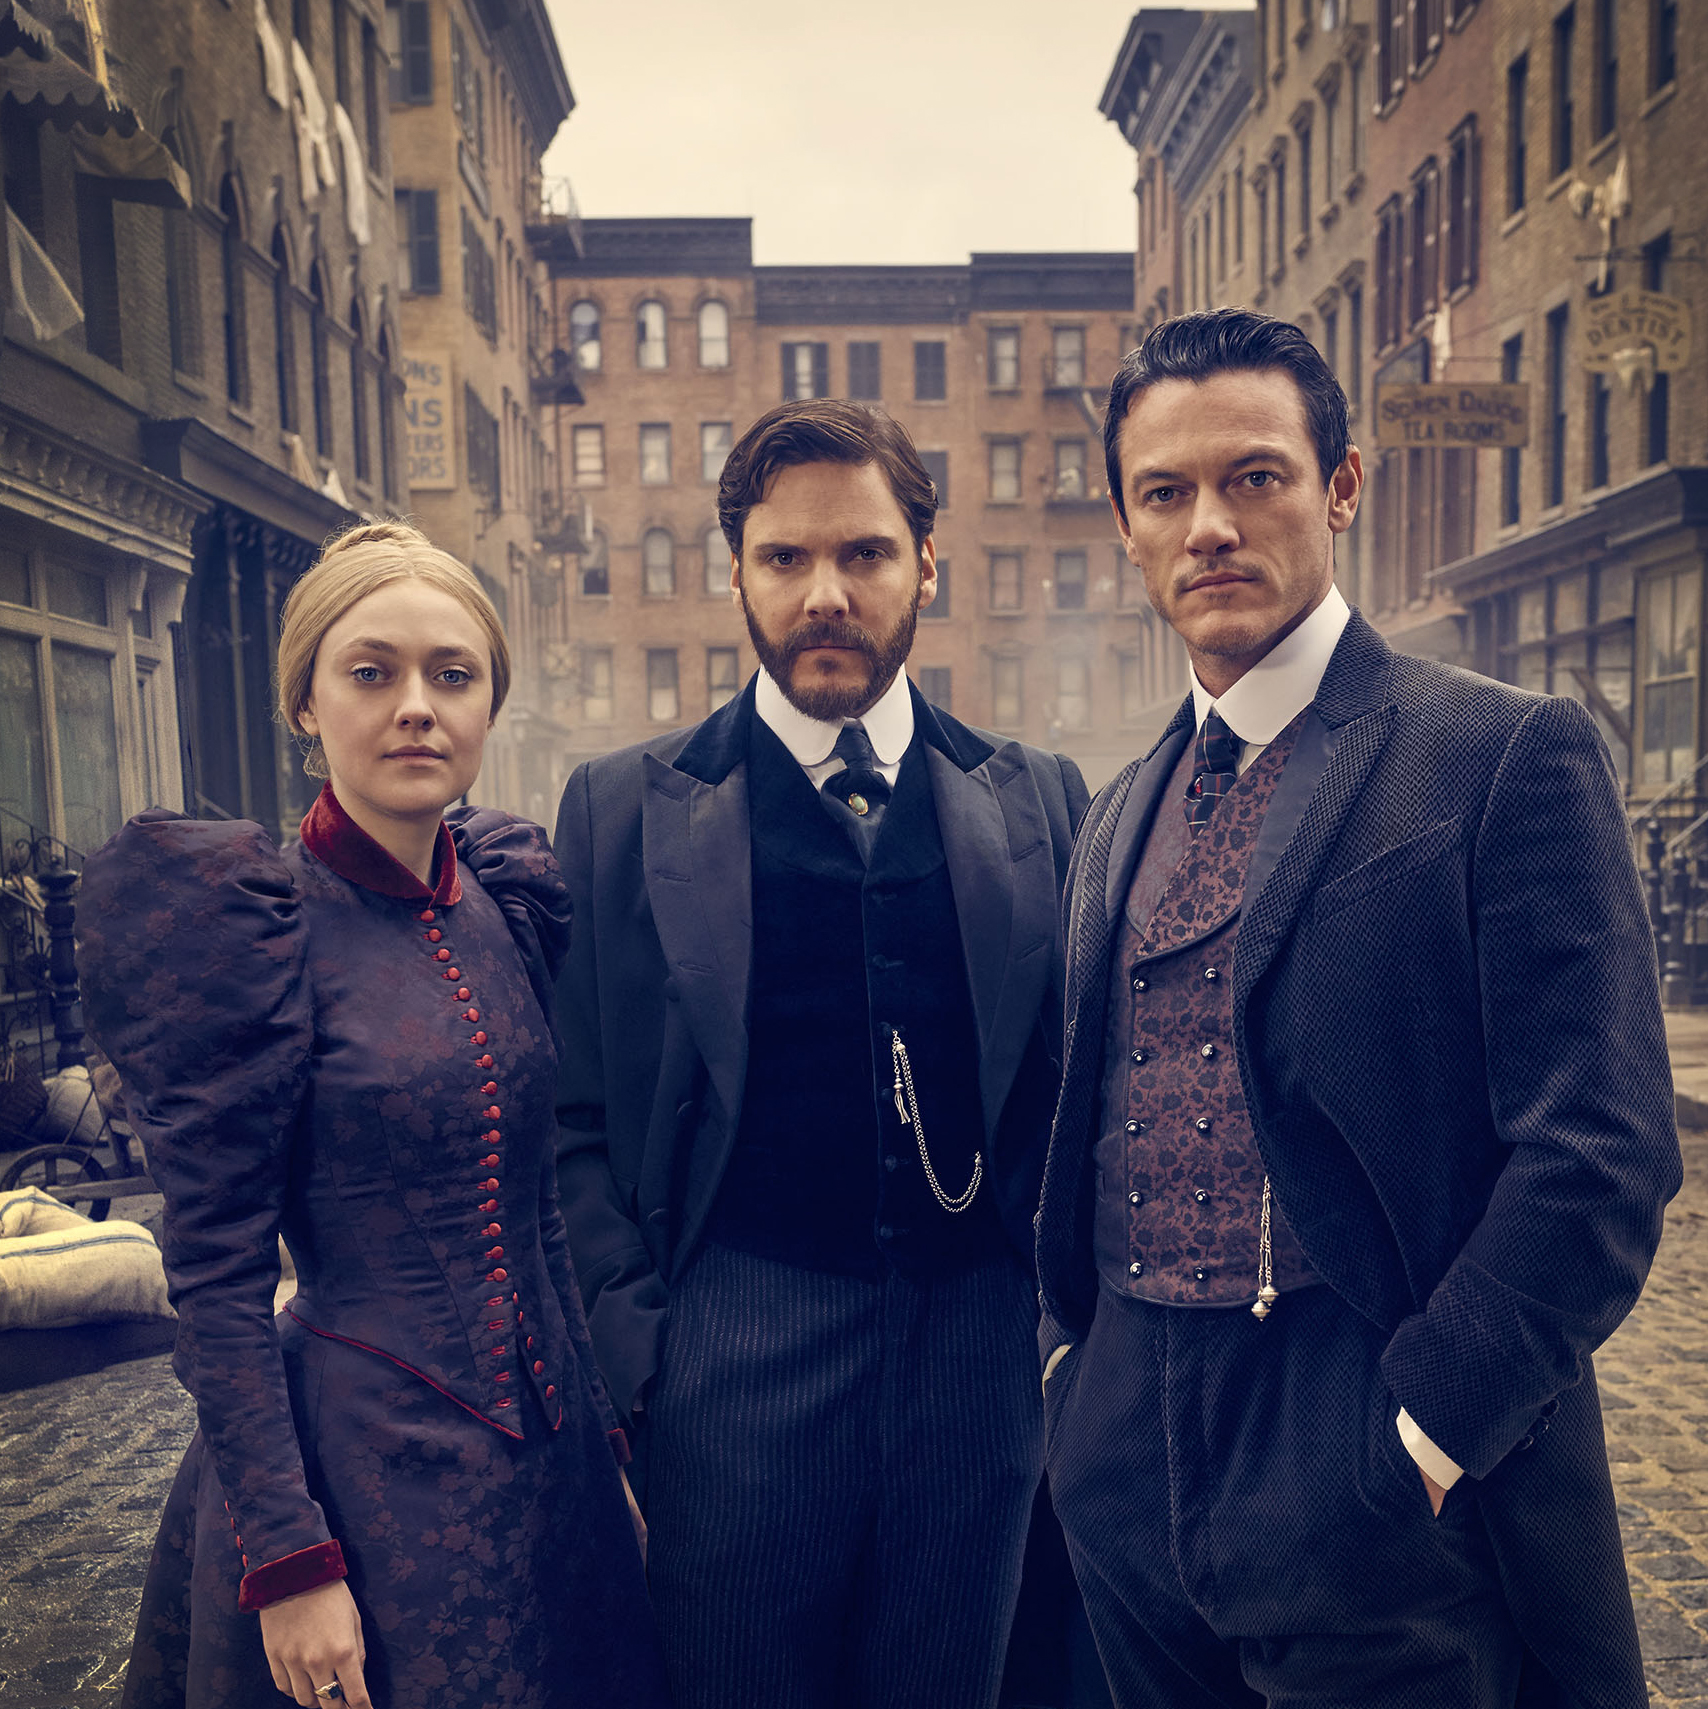 The 24 Year Journey Of The Alienist From Bestseller To Tnt Drama Deadline